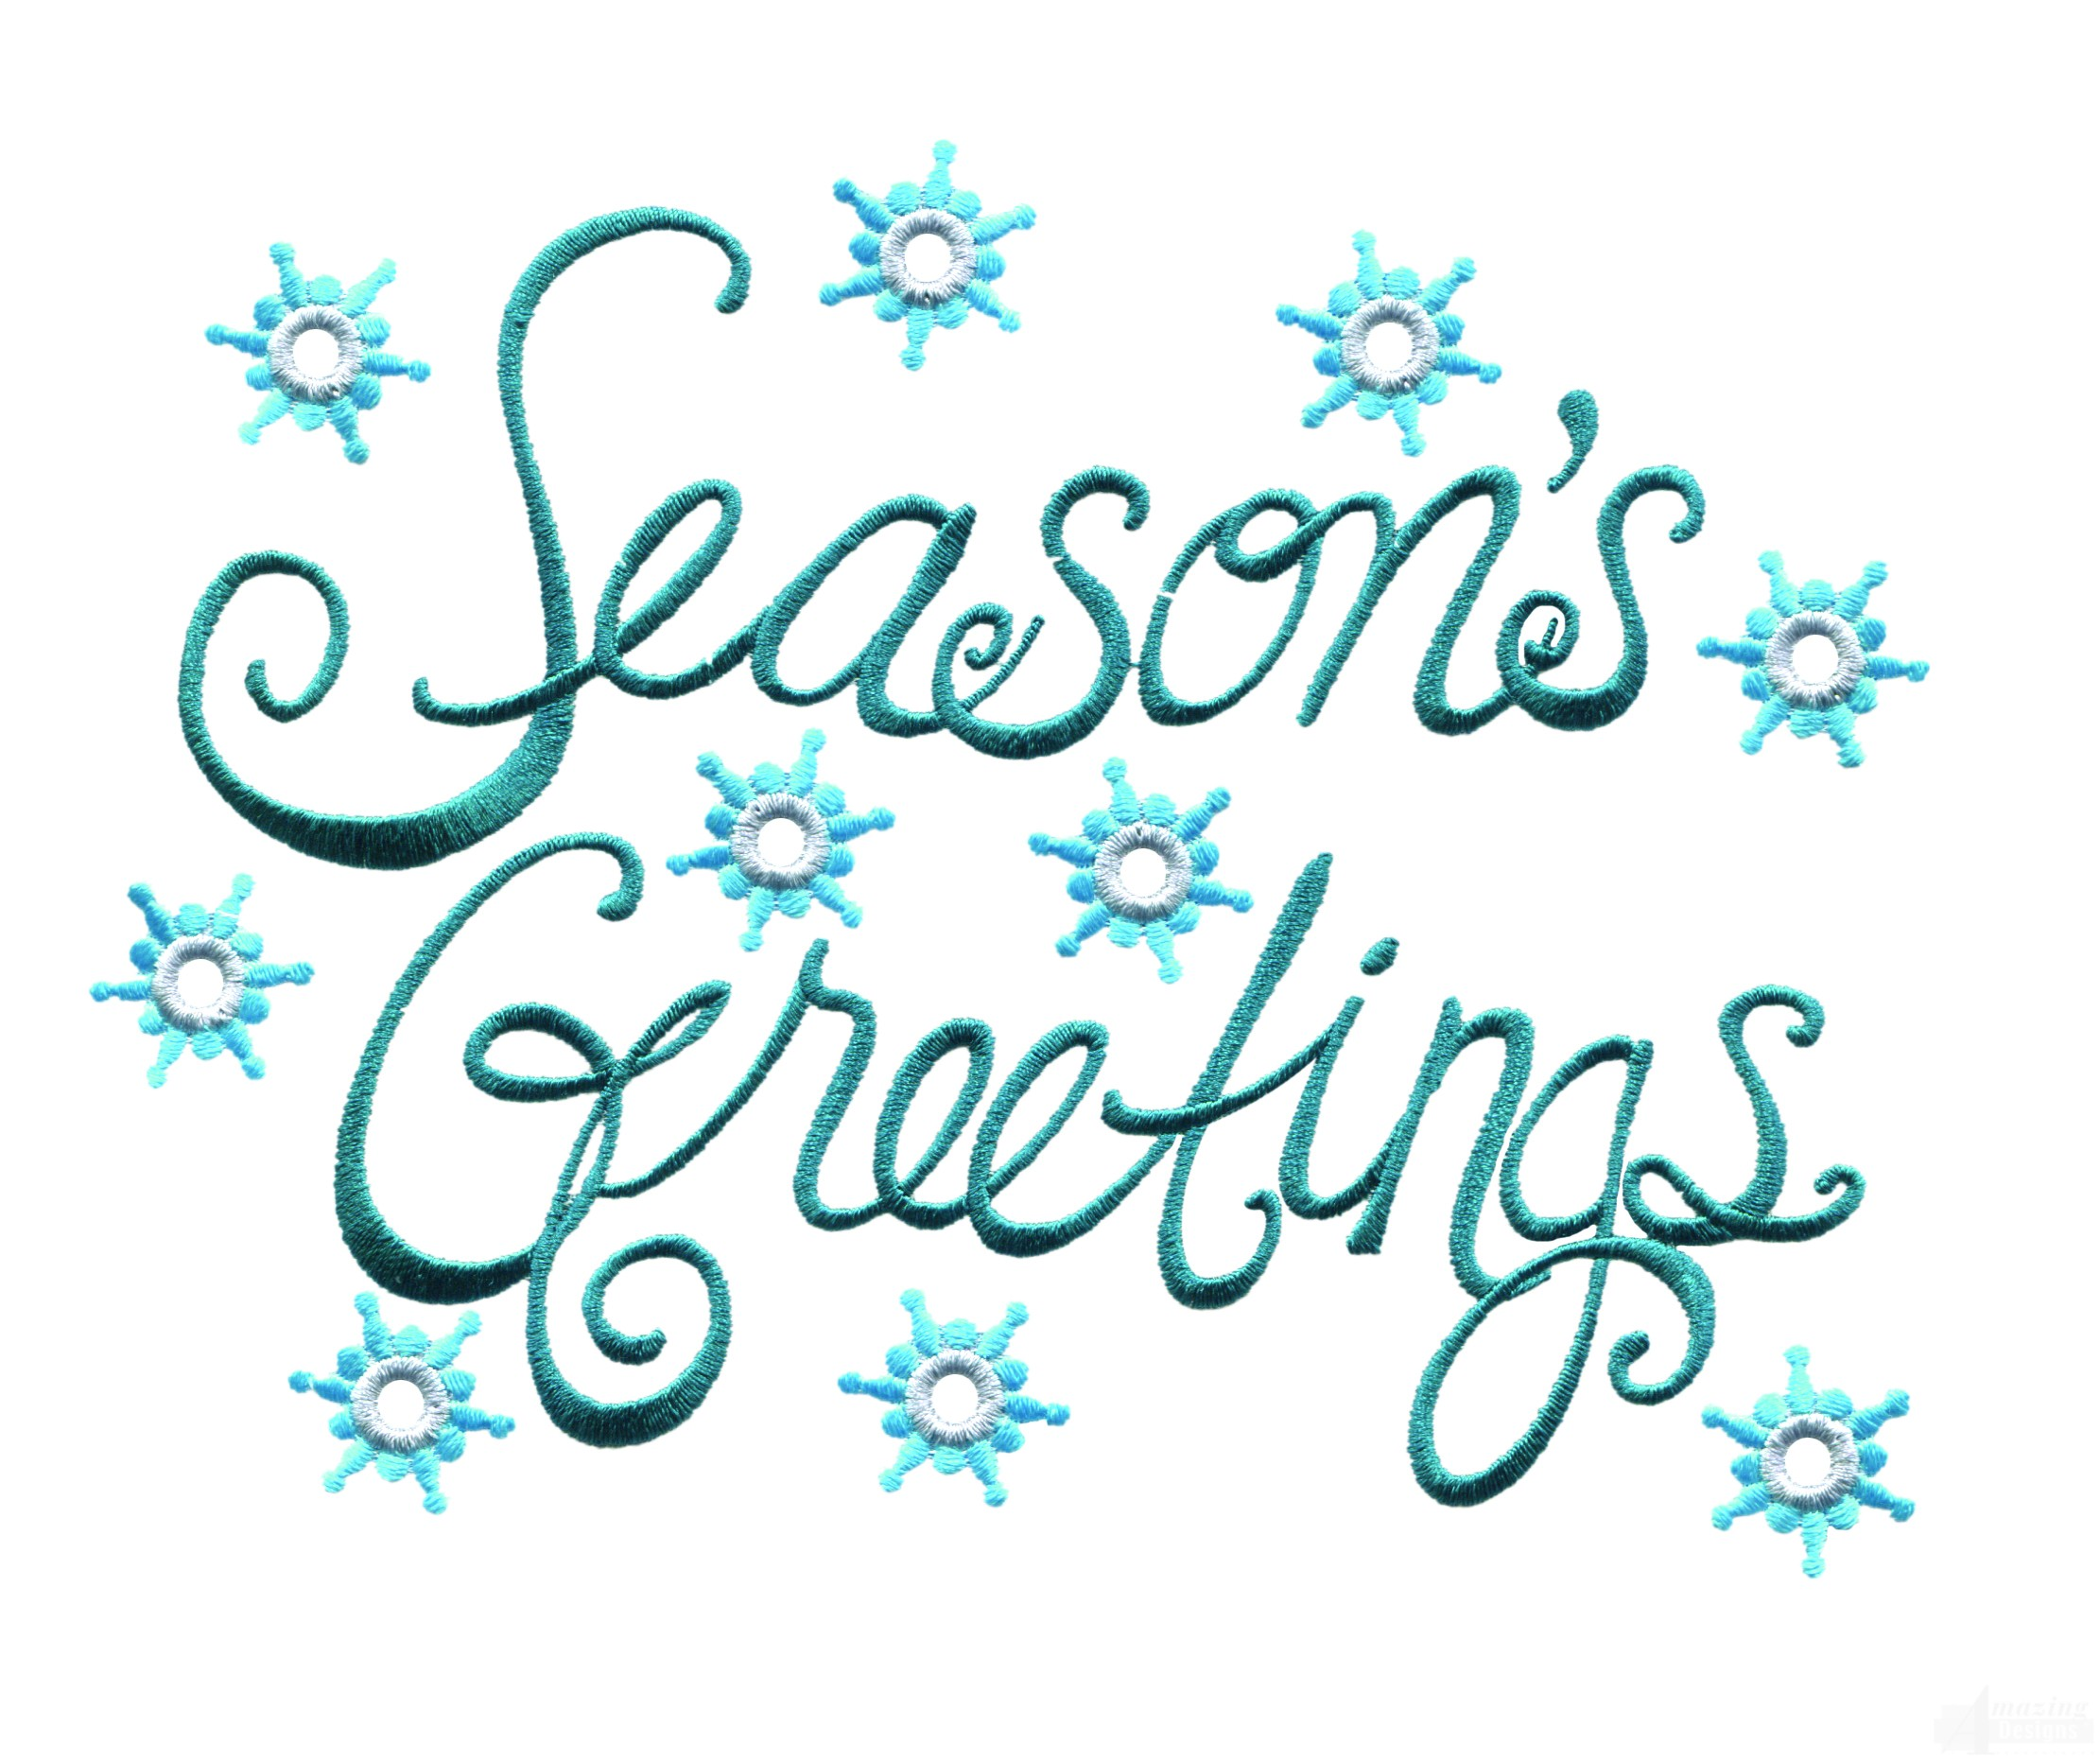 Bright seasons greetings embroidery design m4hsunfo